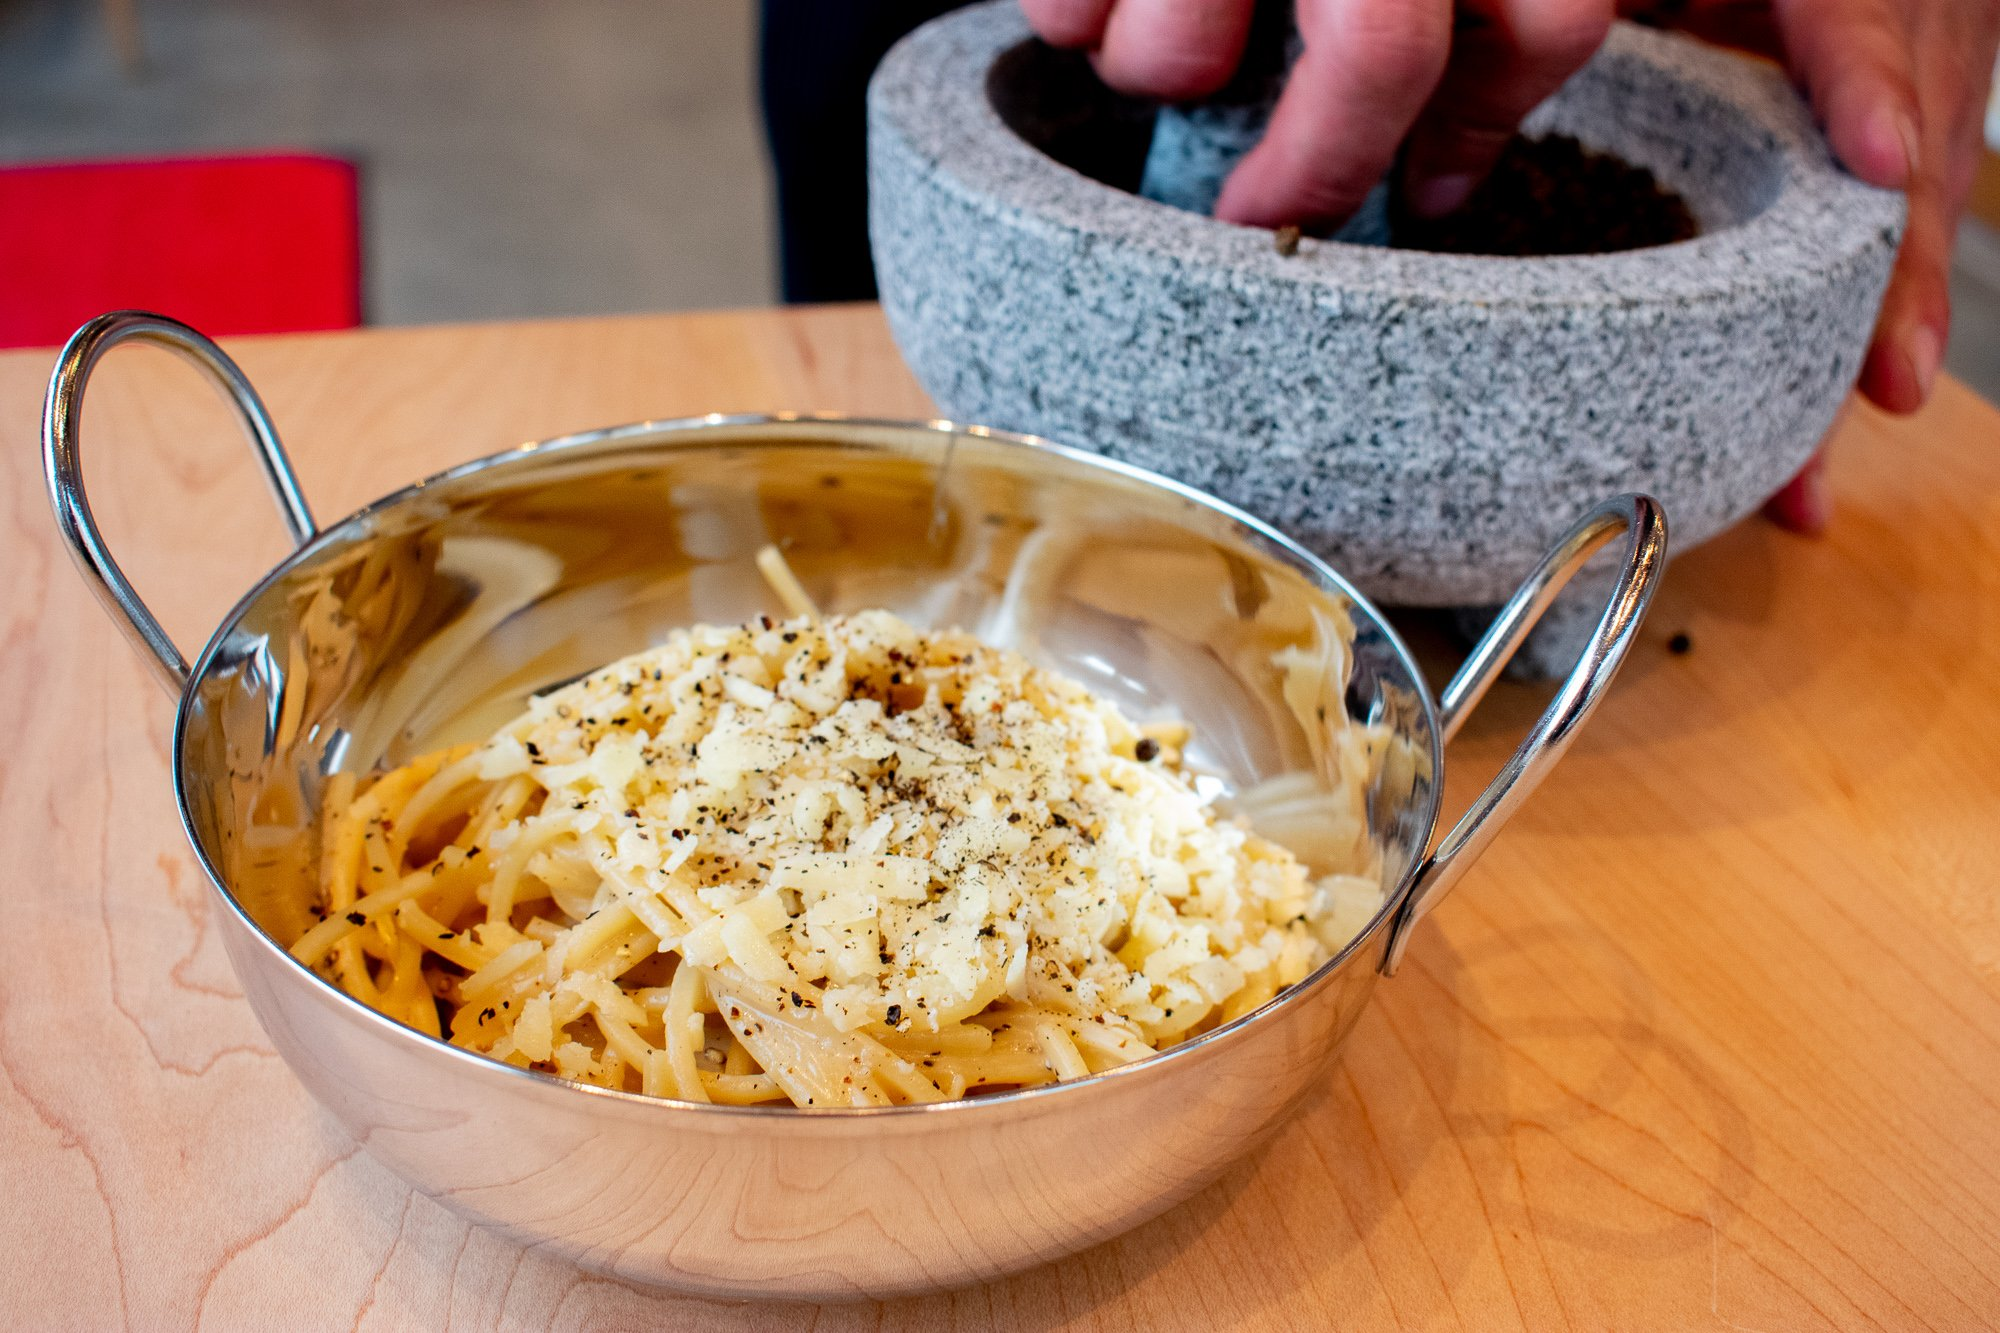 Cacio e pepe is one of three pastas on the menu. The pepper is ground with a mortar and pestle. Photograph by Meaghan Webster.